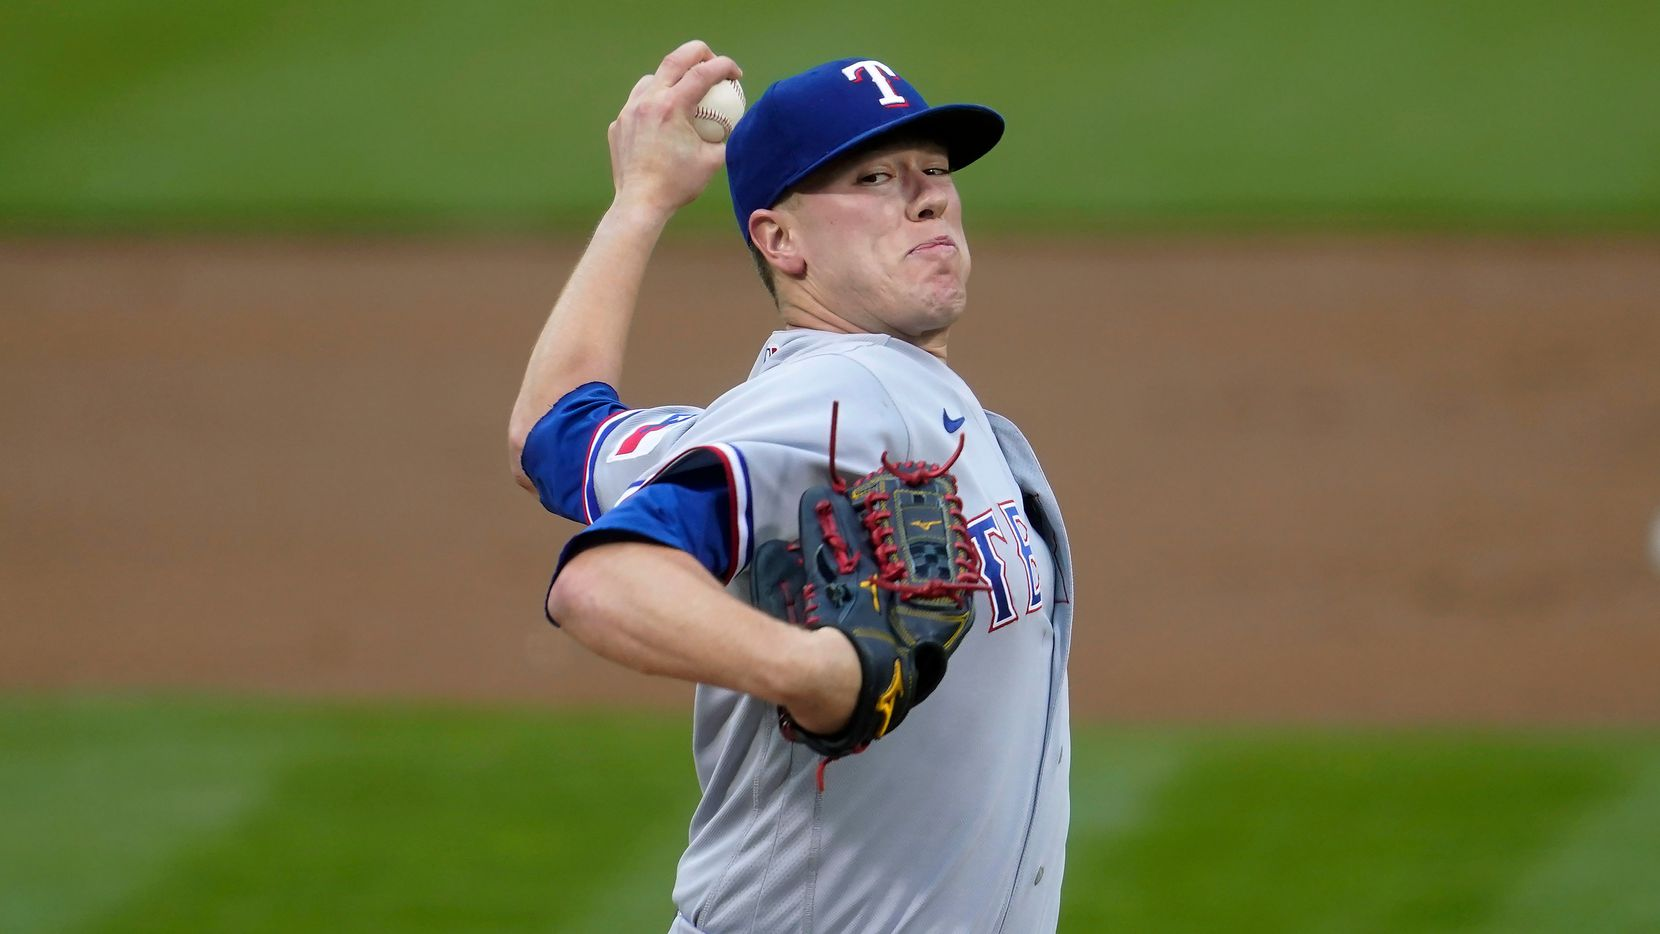 Texas Rangers' Kolby Allard pitches against the Oakland Athletics during the first inning of a baseball game in Oakland, Calif., Wednesday, June 30, 2021.